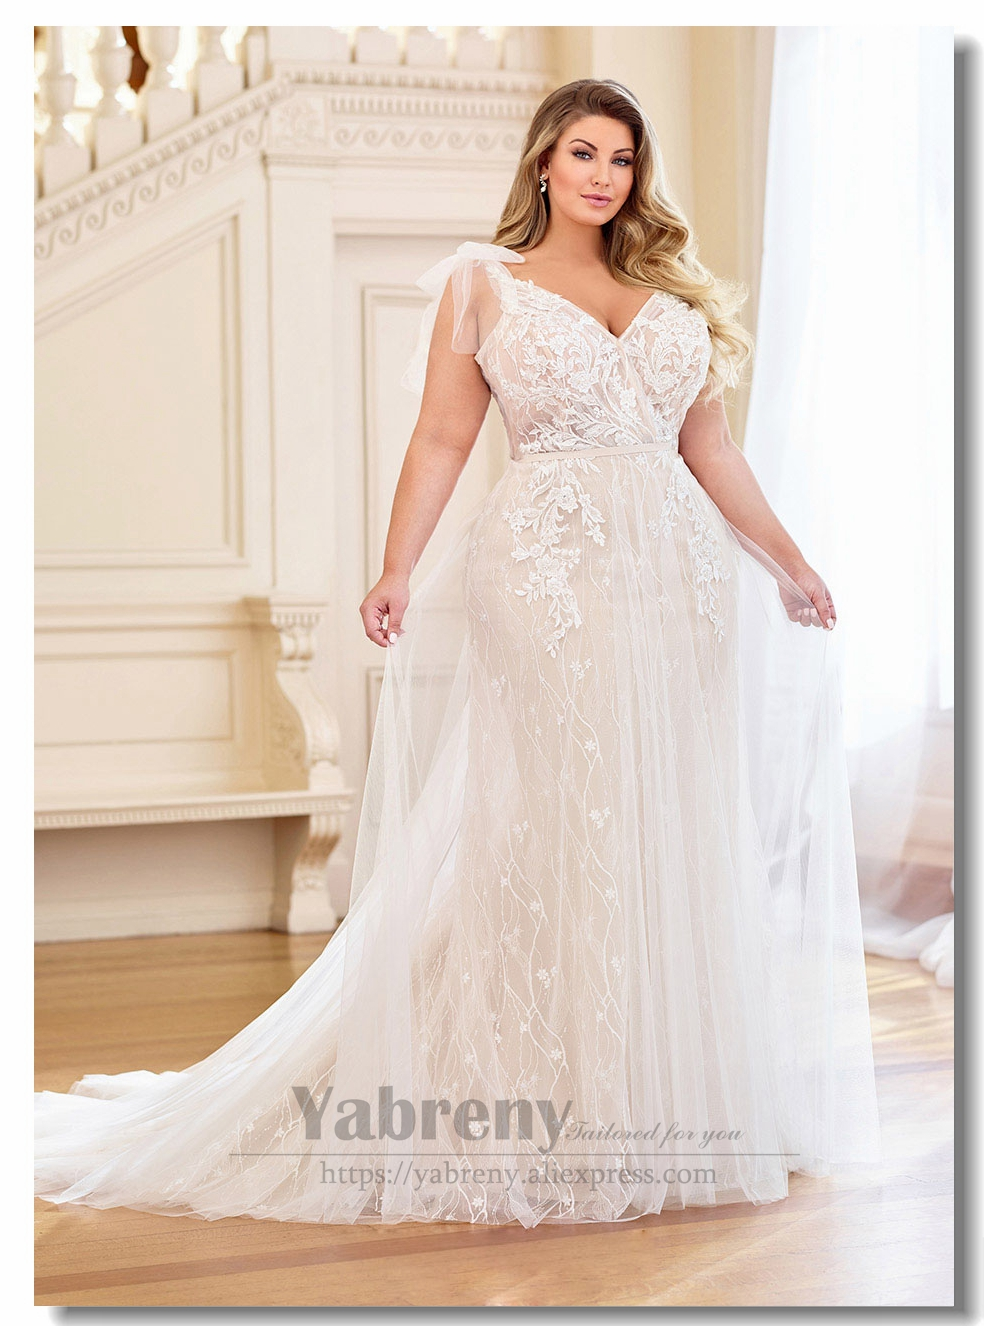 2019 new arrival plus size wedding dressesin wedding